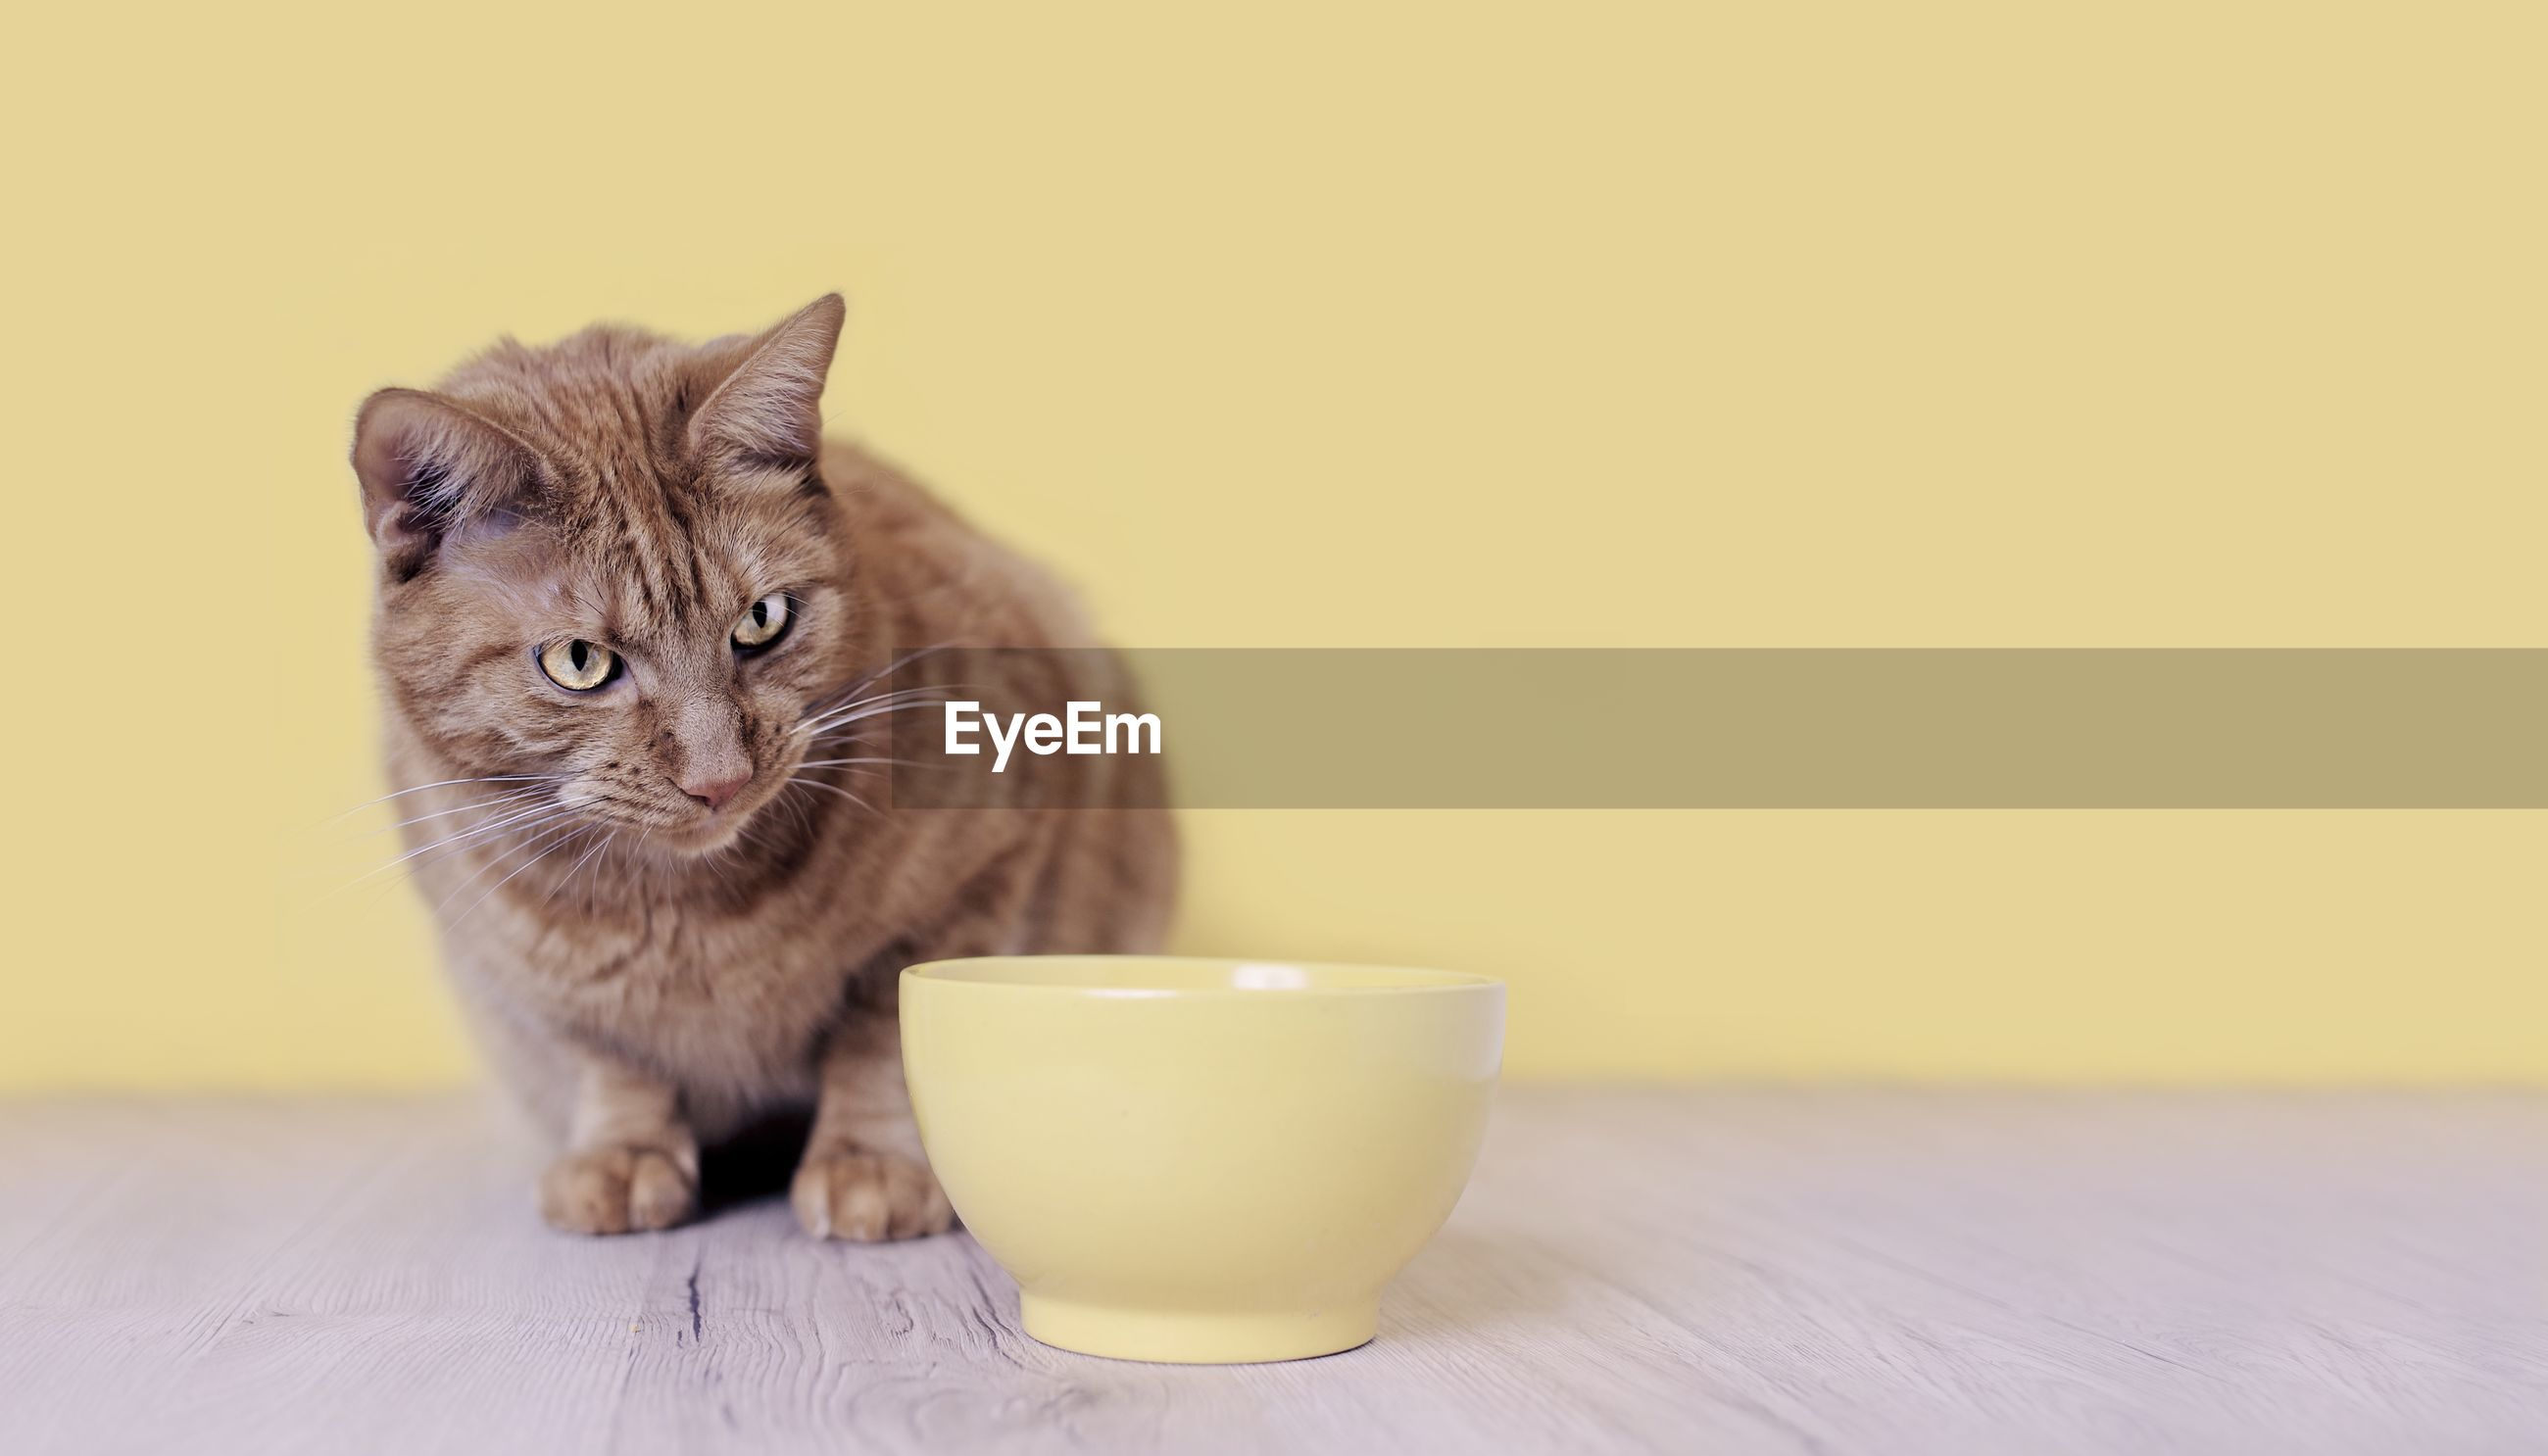 Cute ginger cat looking currious to a yellow food bowl. panoramic image with copy space.